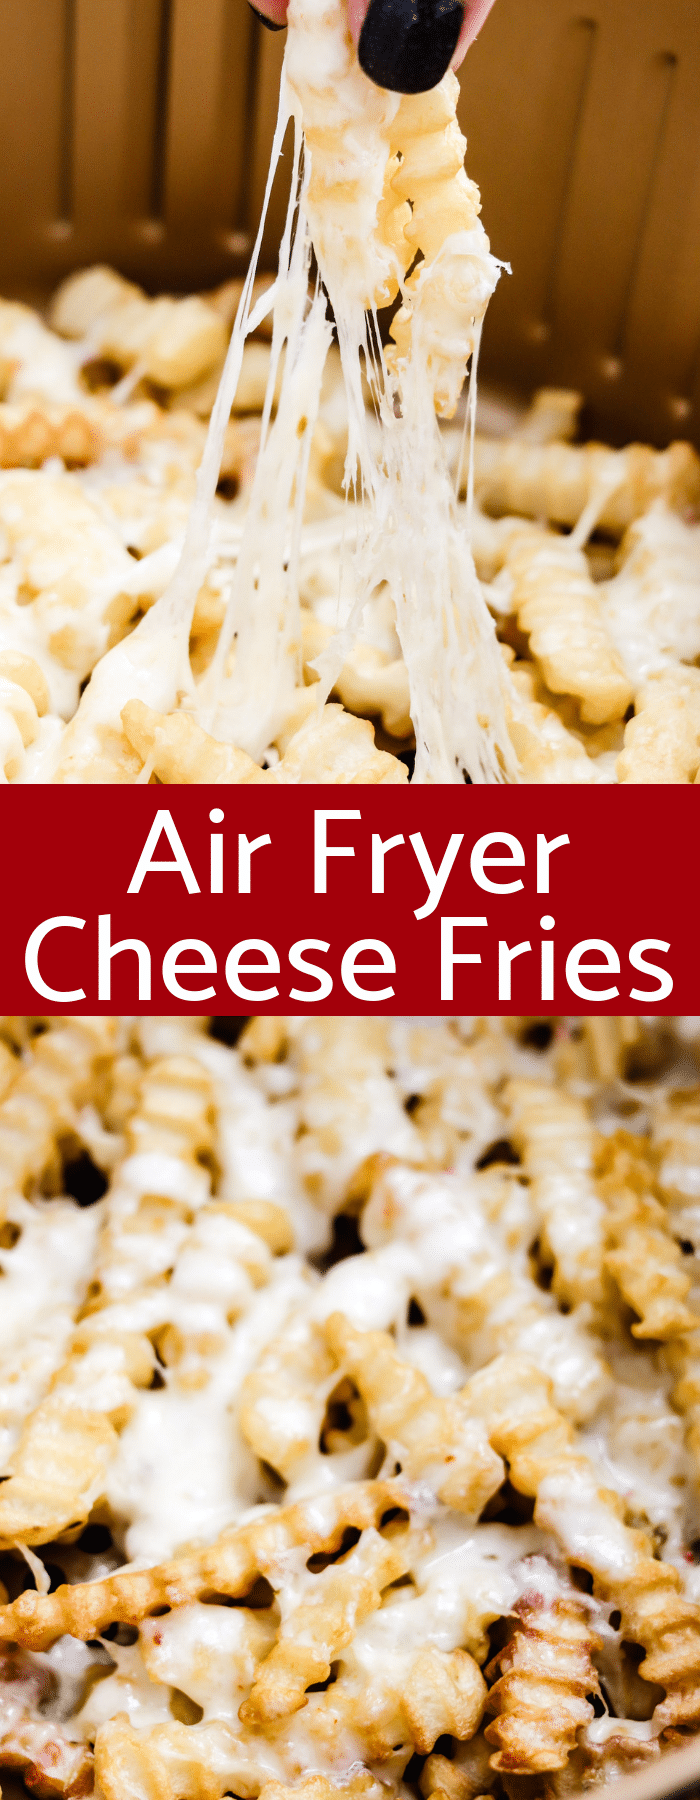 Air Fryer Cheese Fries have only two ingredients and are done in 12 minutes! These quick easy fries will be a go-to appetizer or snack!